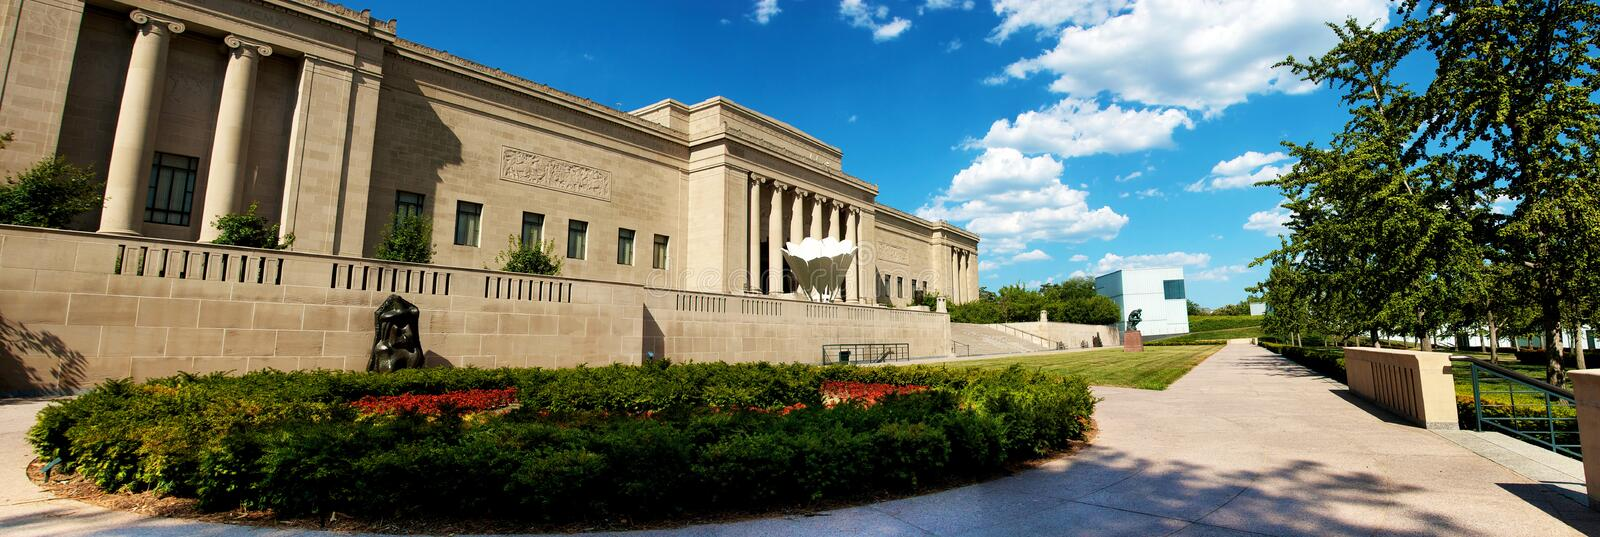 Museu Kansas City de Nelson Atkins foto de stock